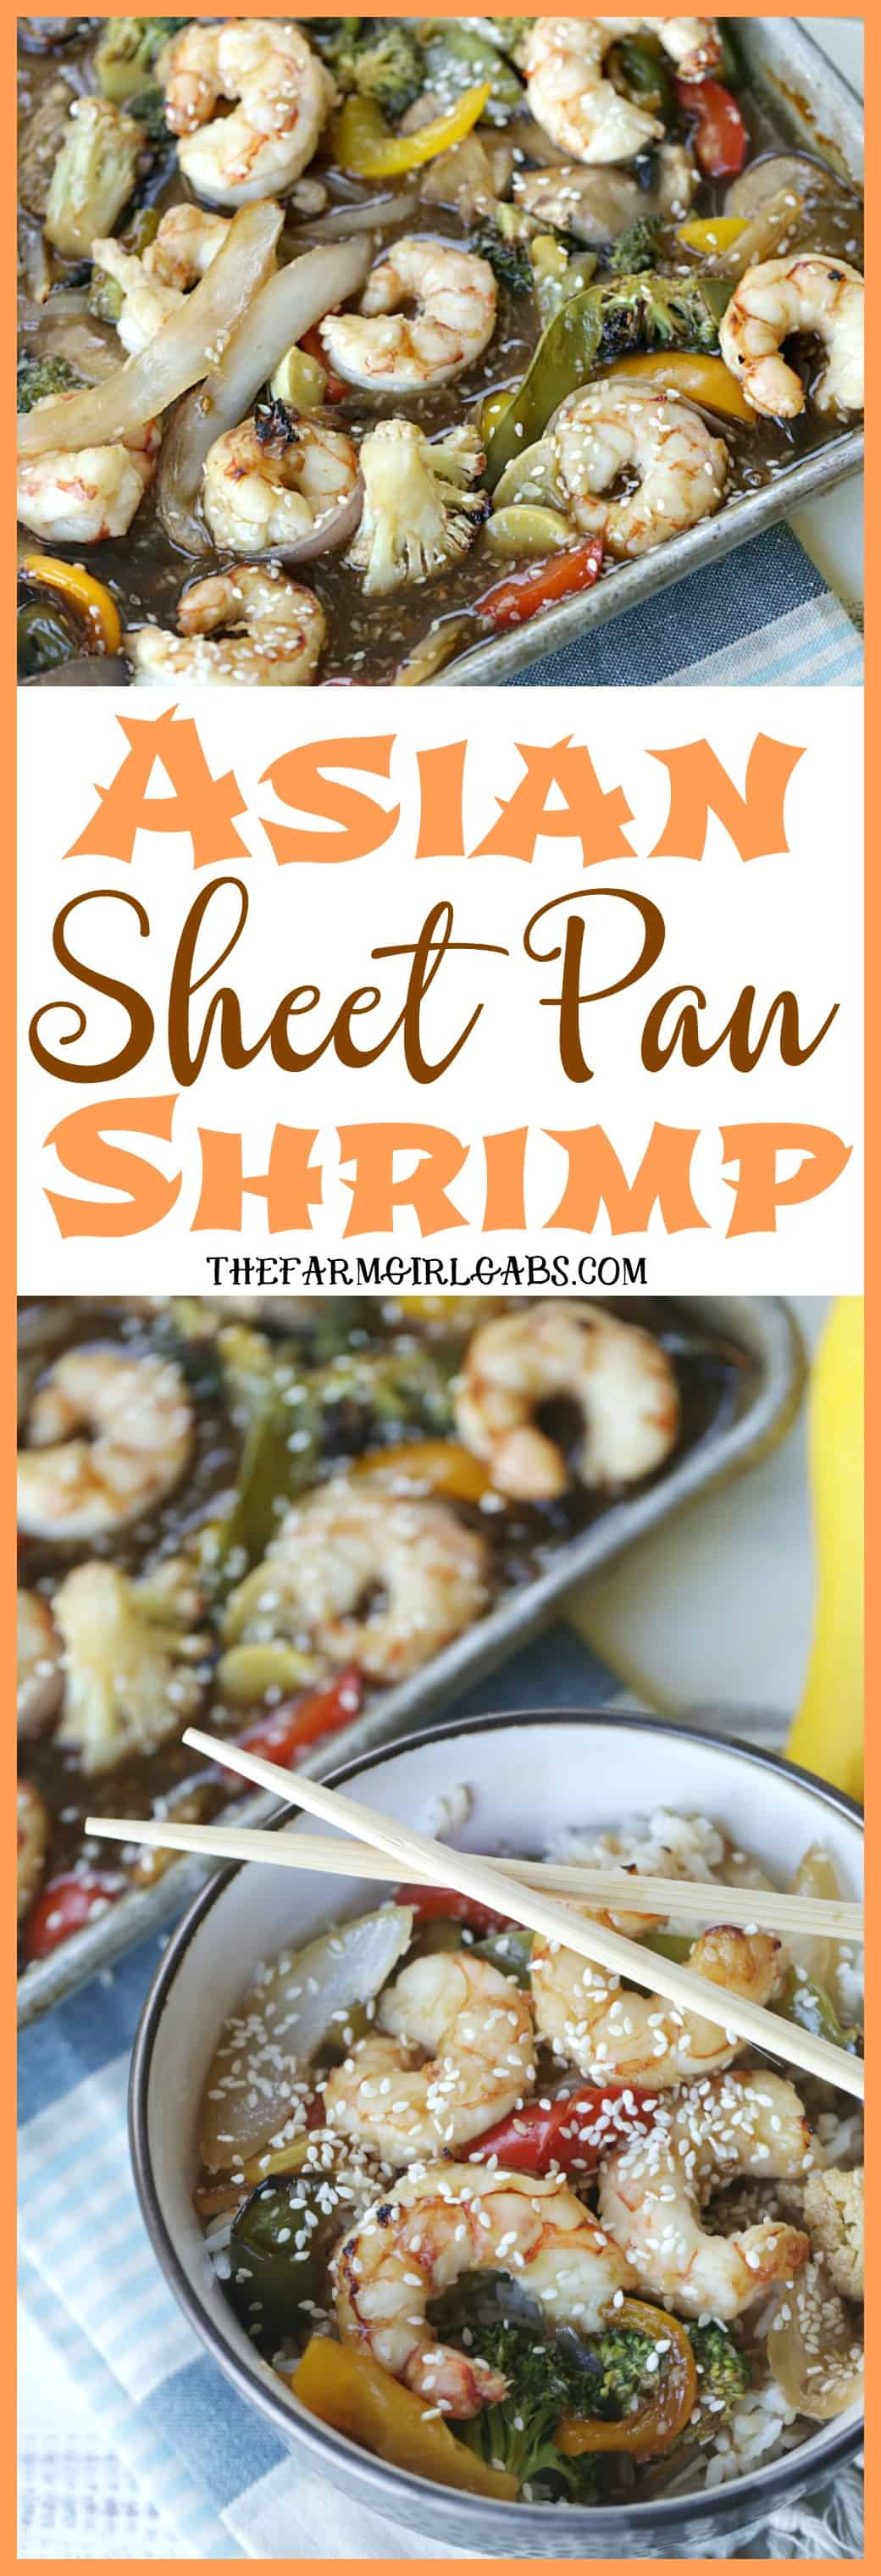 This quick and easy Asian Sheet Pan Shrimp dinner is perfect for Fish Fridays during the Lenten season. #wpseafood #seafood #maindish #shrimprecipe #dinnerideas